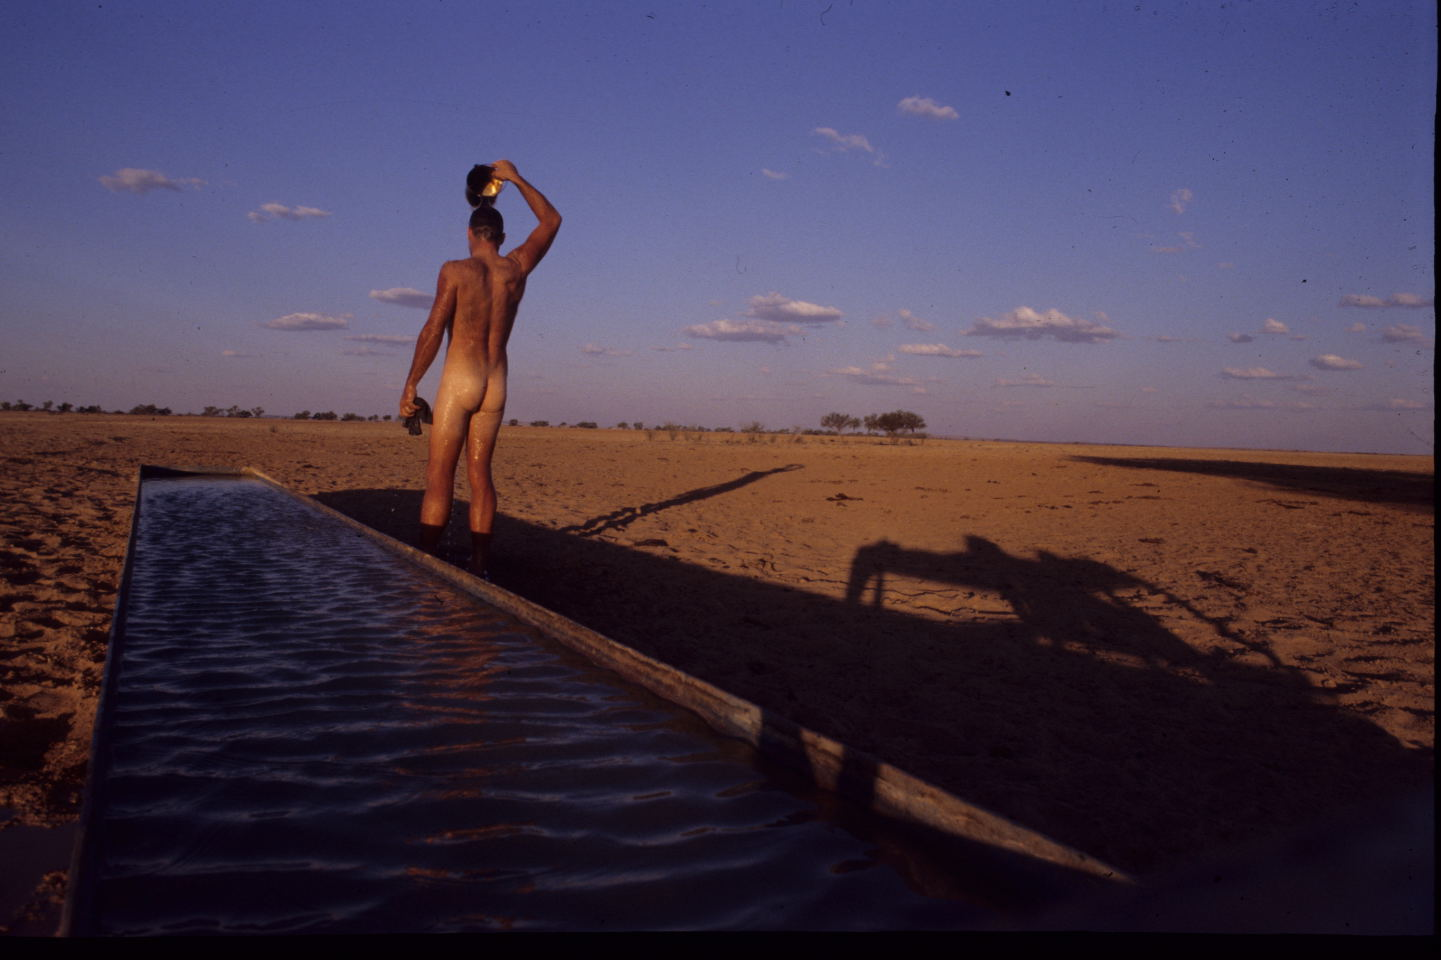 ..time for a wash at a cattle trough, western Queensland.